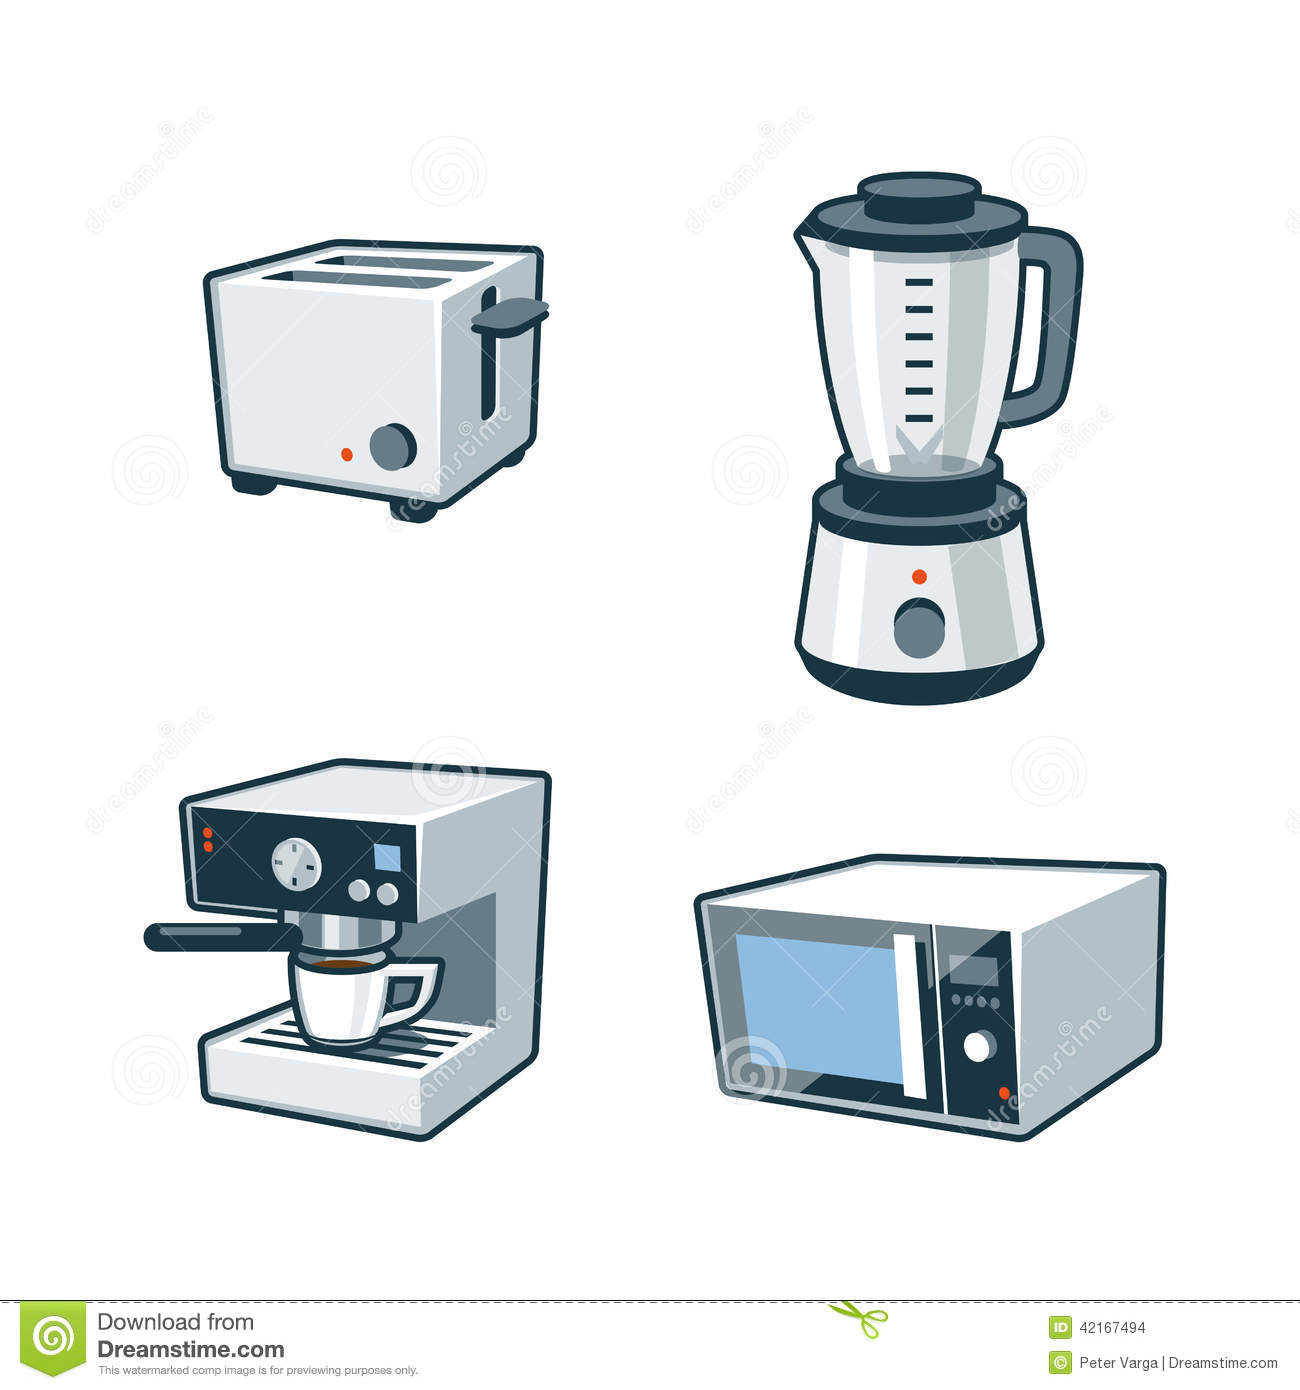 Cartoon kitchen appliances - Cartoon Kitchen Tool Stickers Home Appliances 3 Toaster Blender Coffee Maker Microwave Ov Stock Images